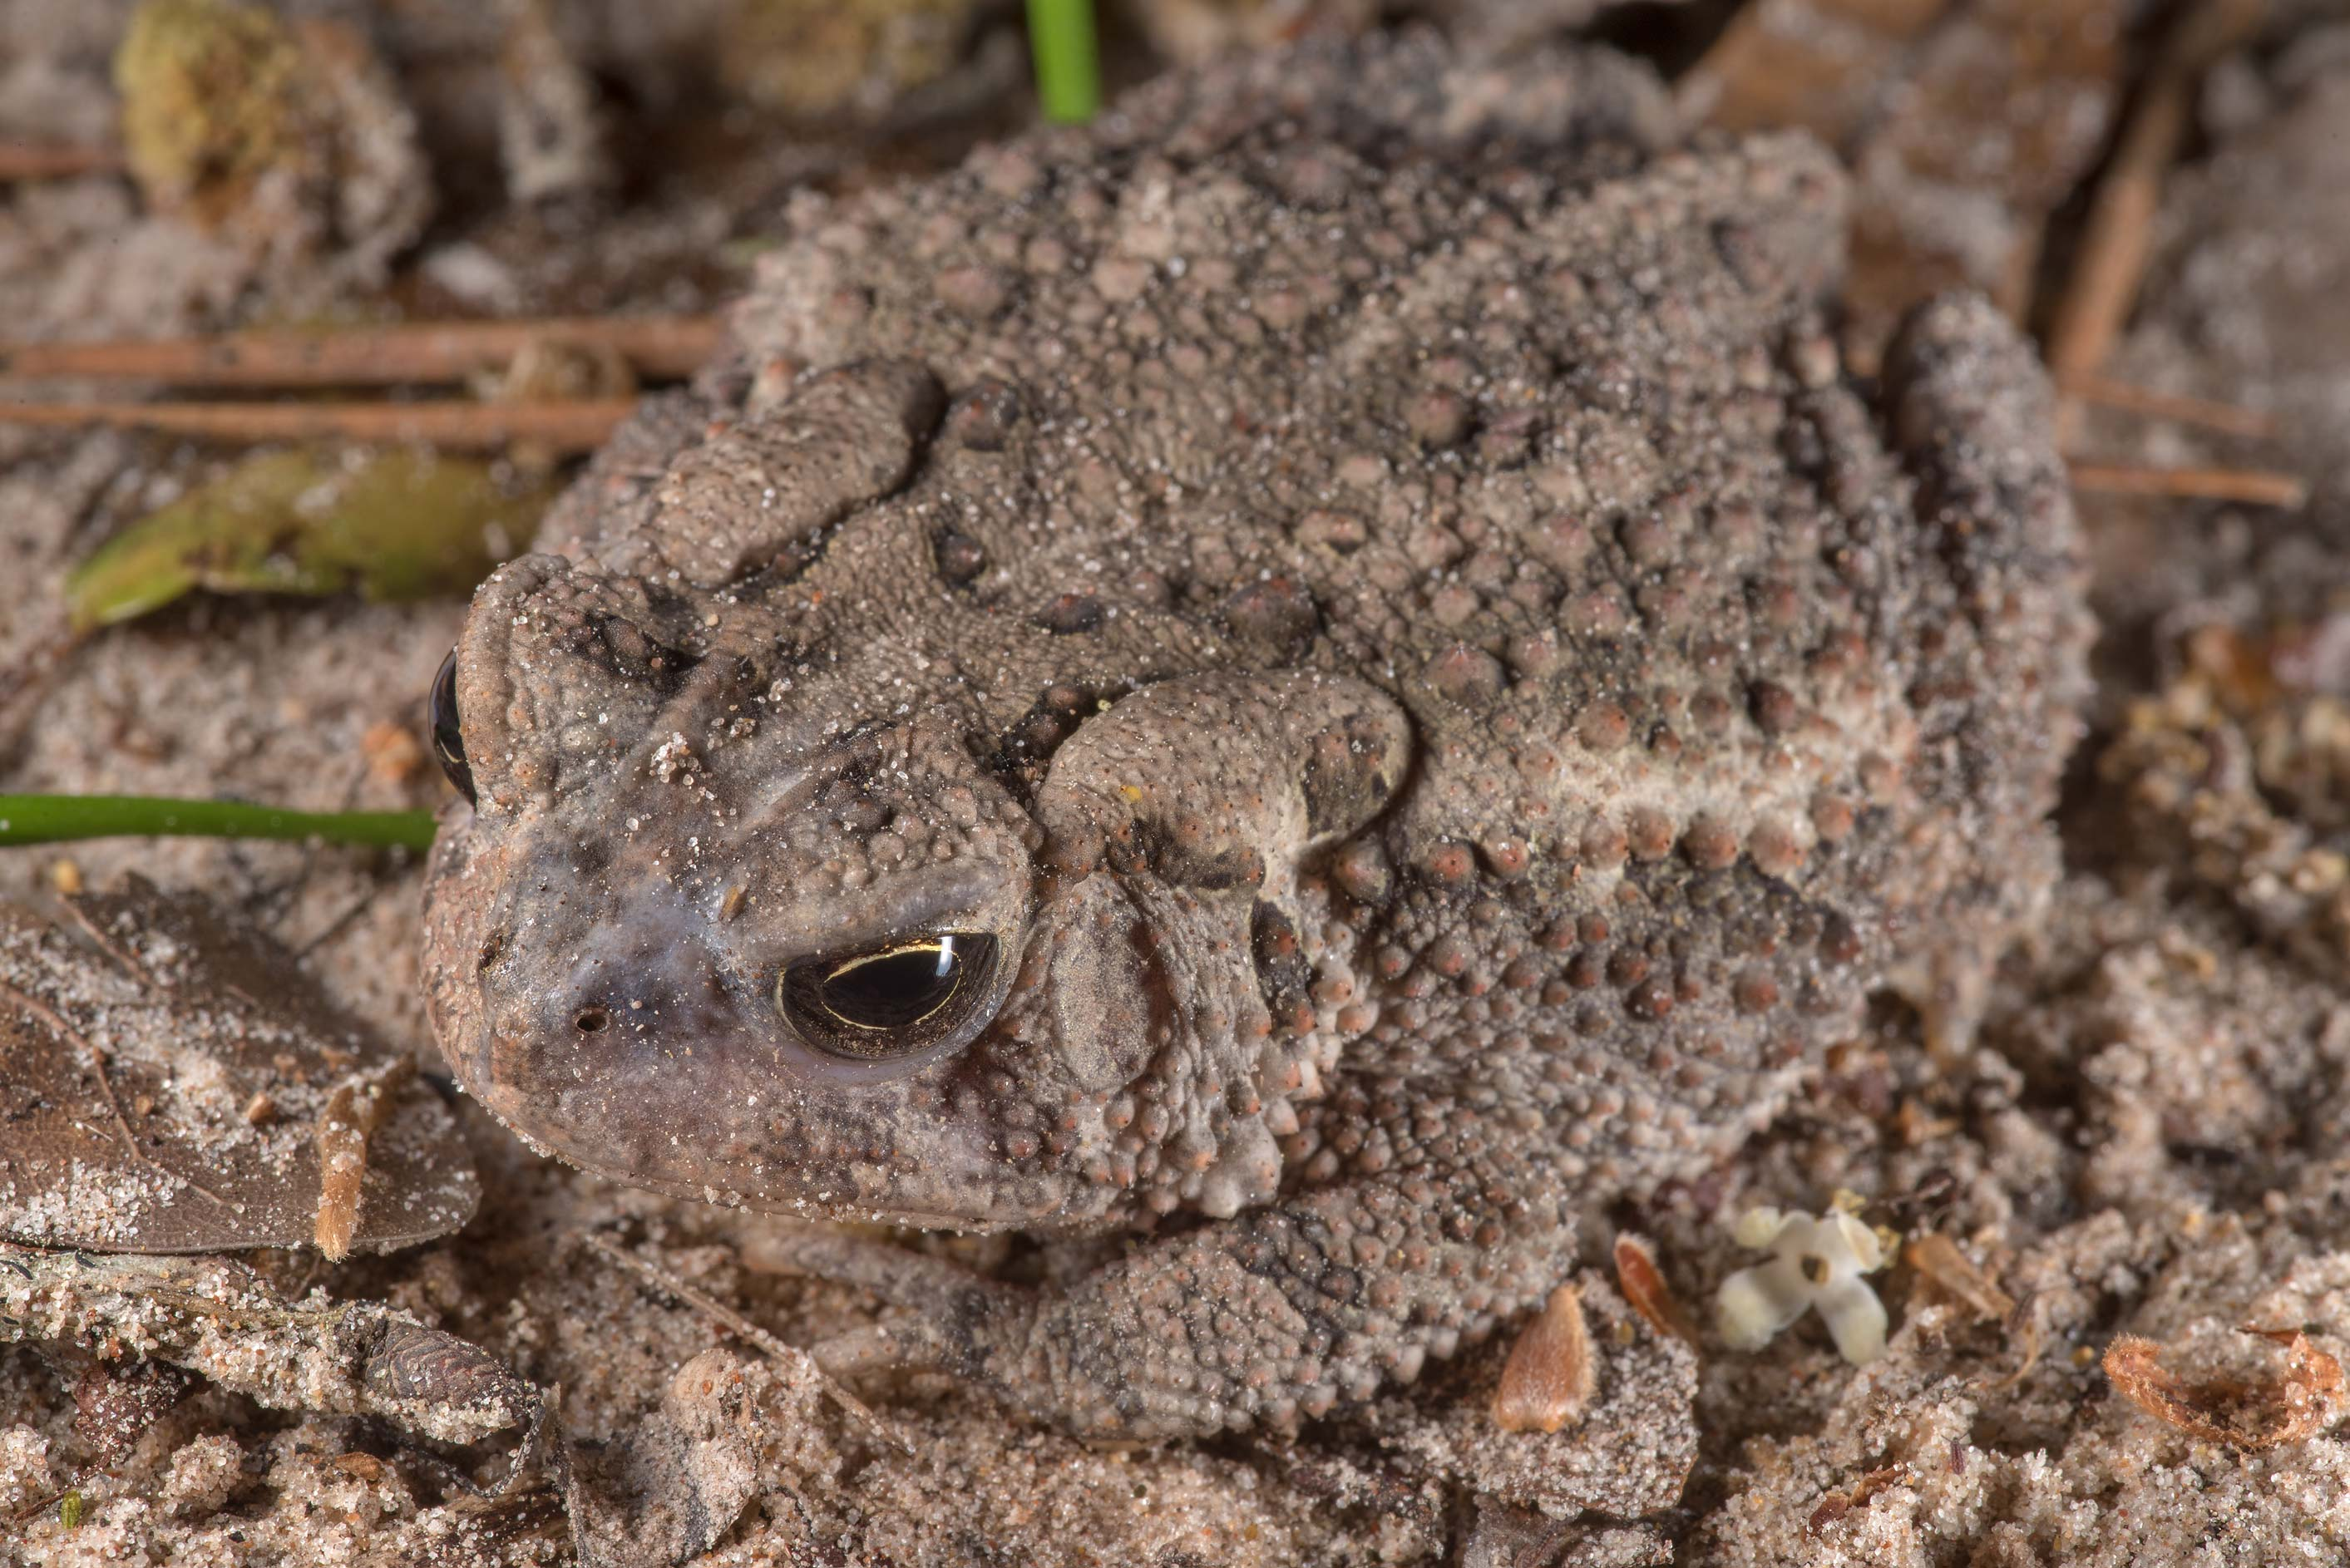 Camouflage of southern toad (Bufo terrestris) on...National Forest near Huntsville. Texas